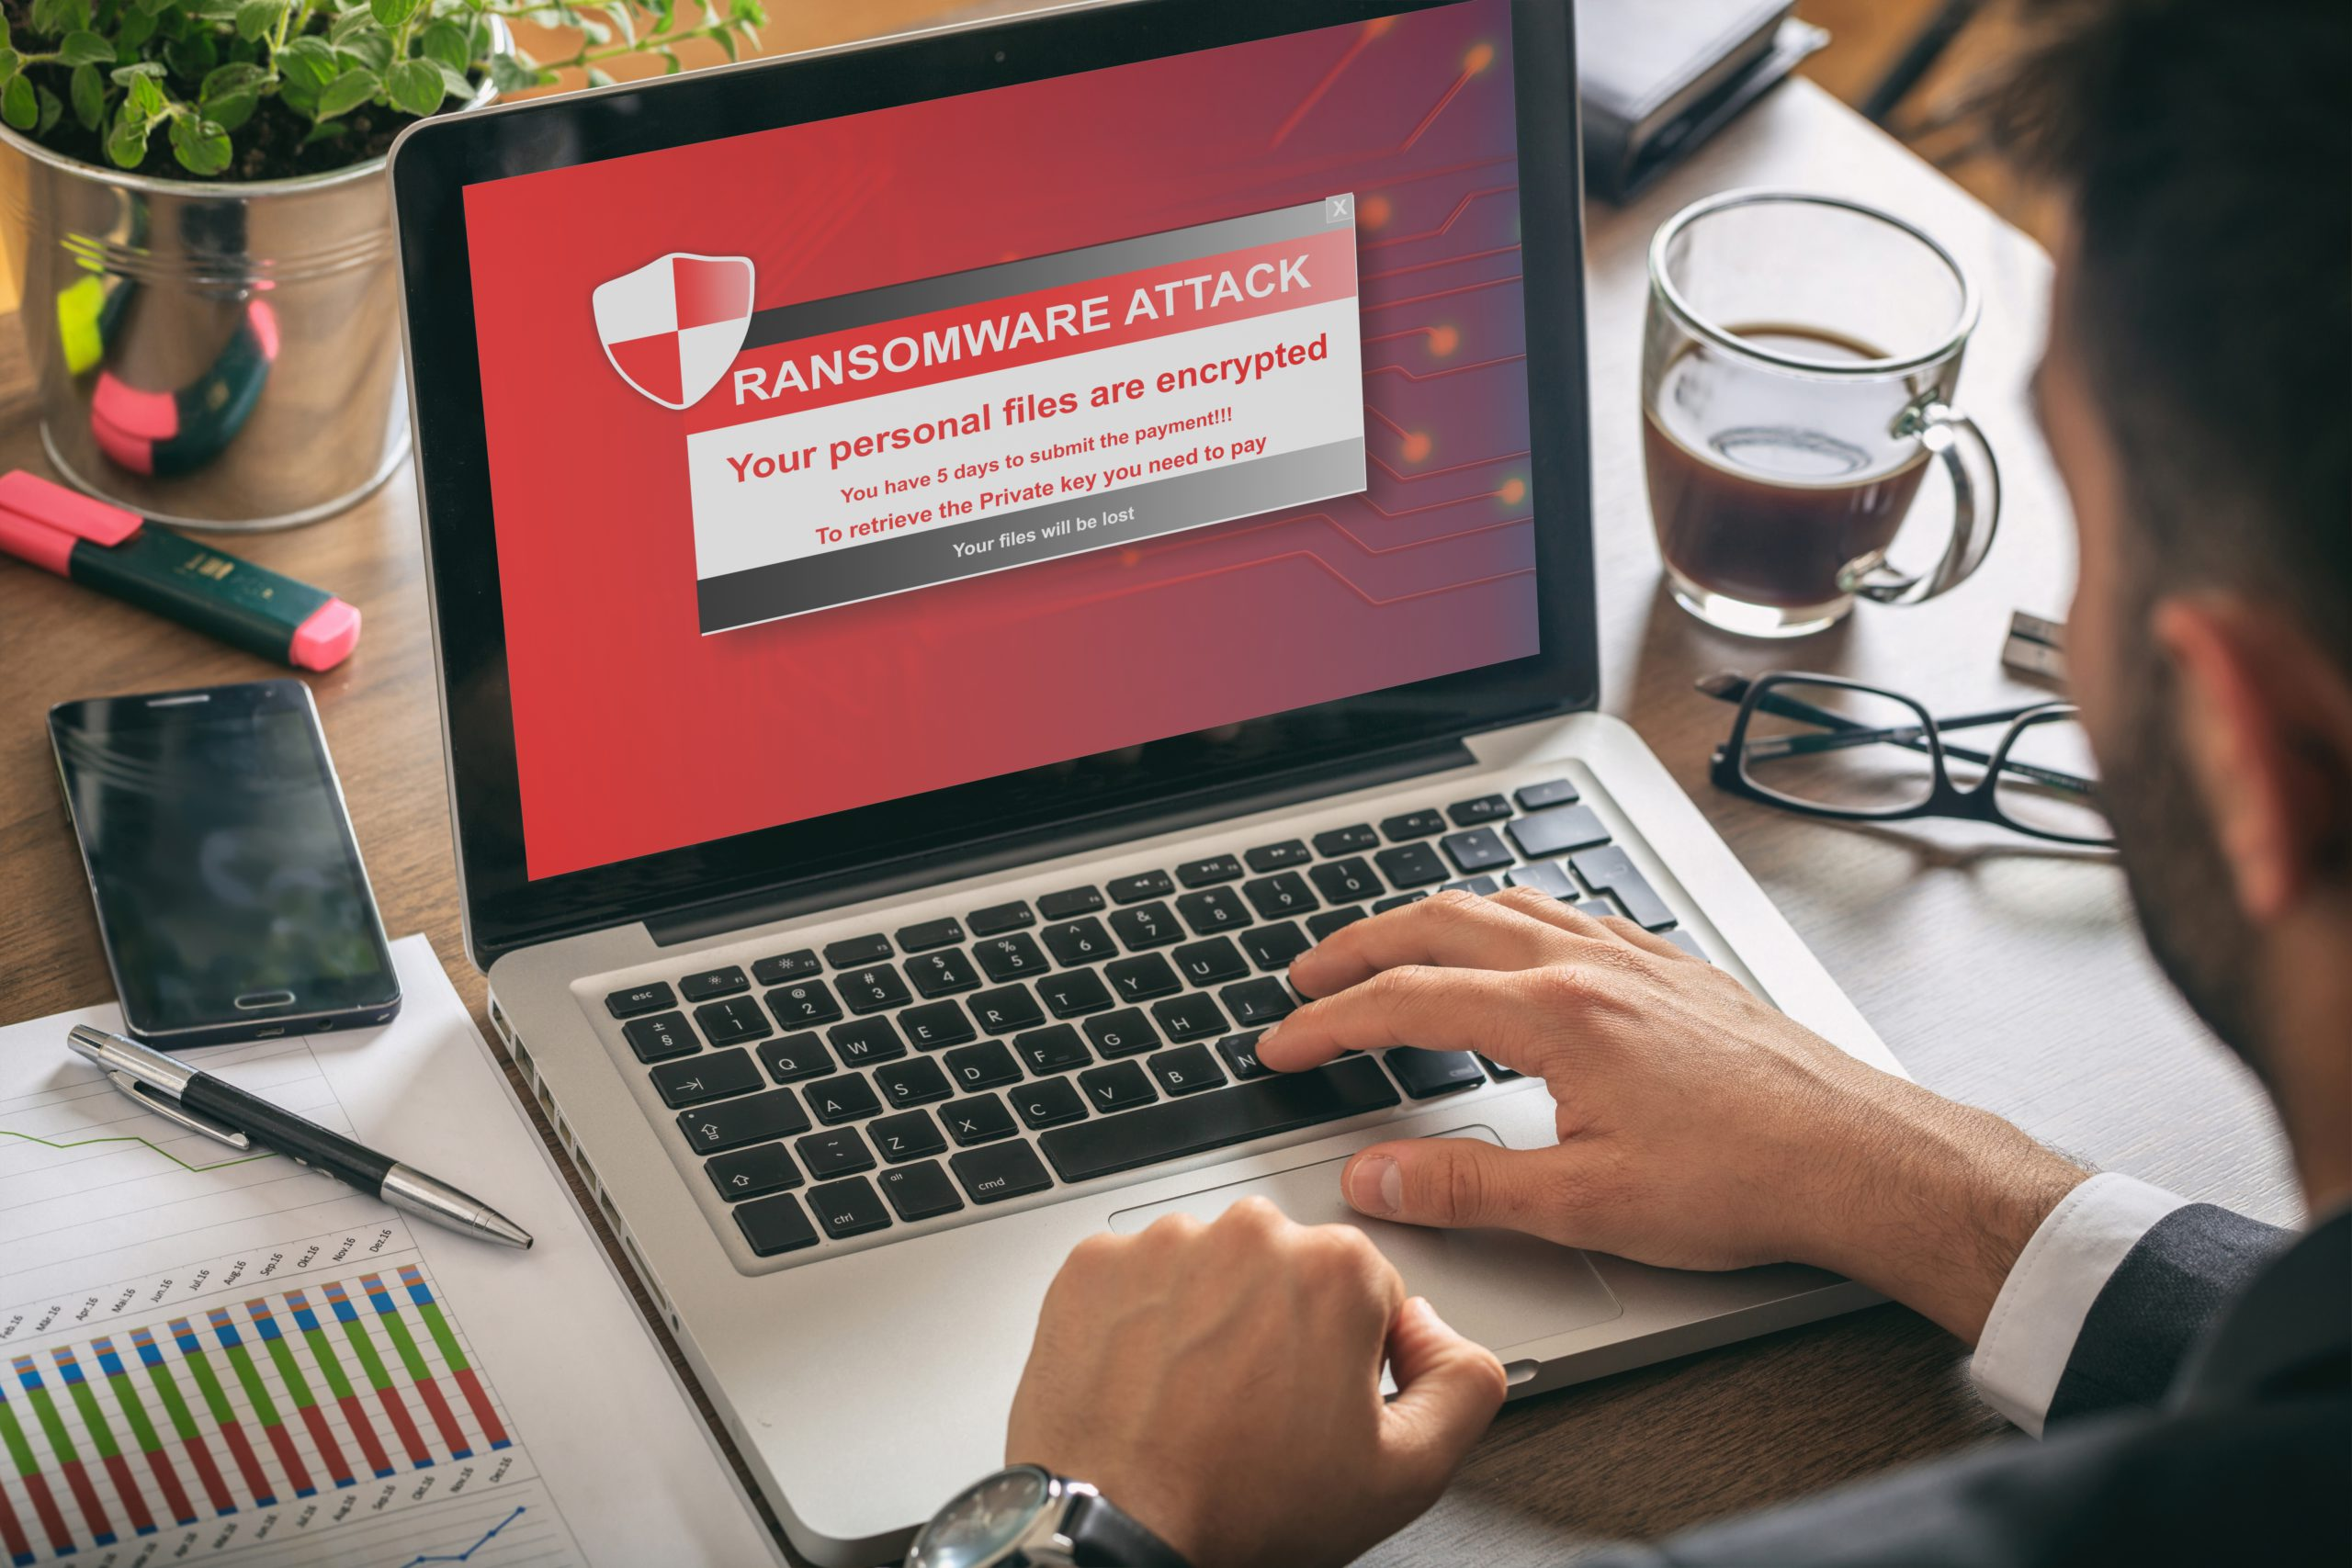 Ransomware prevention